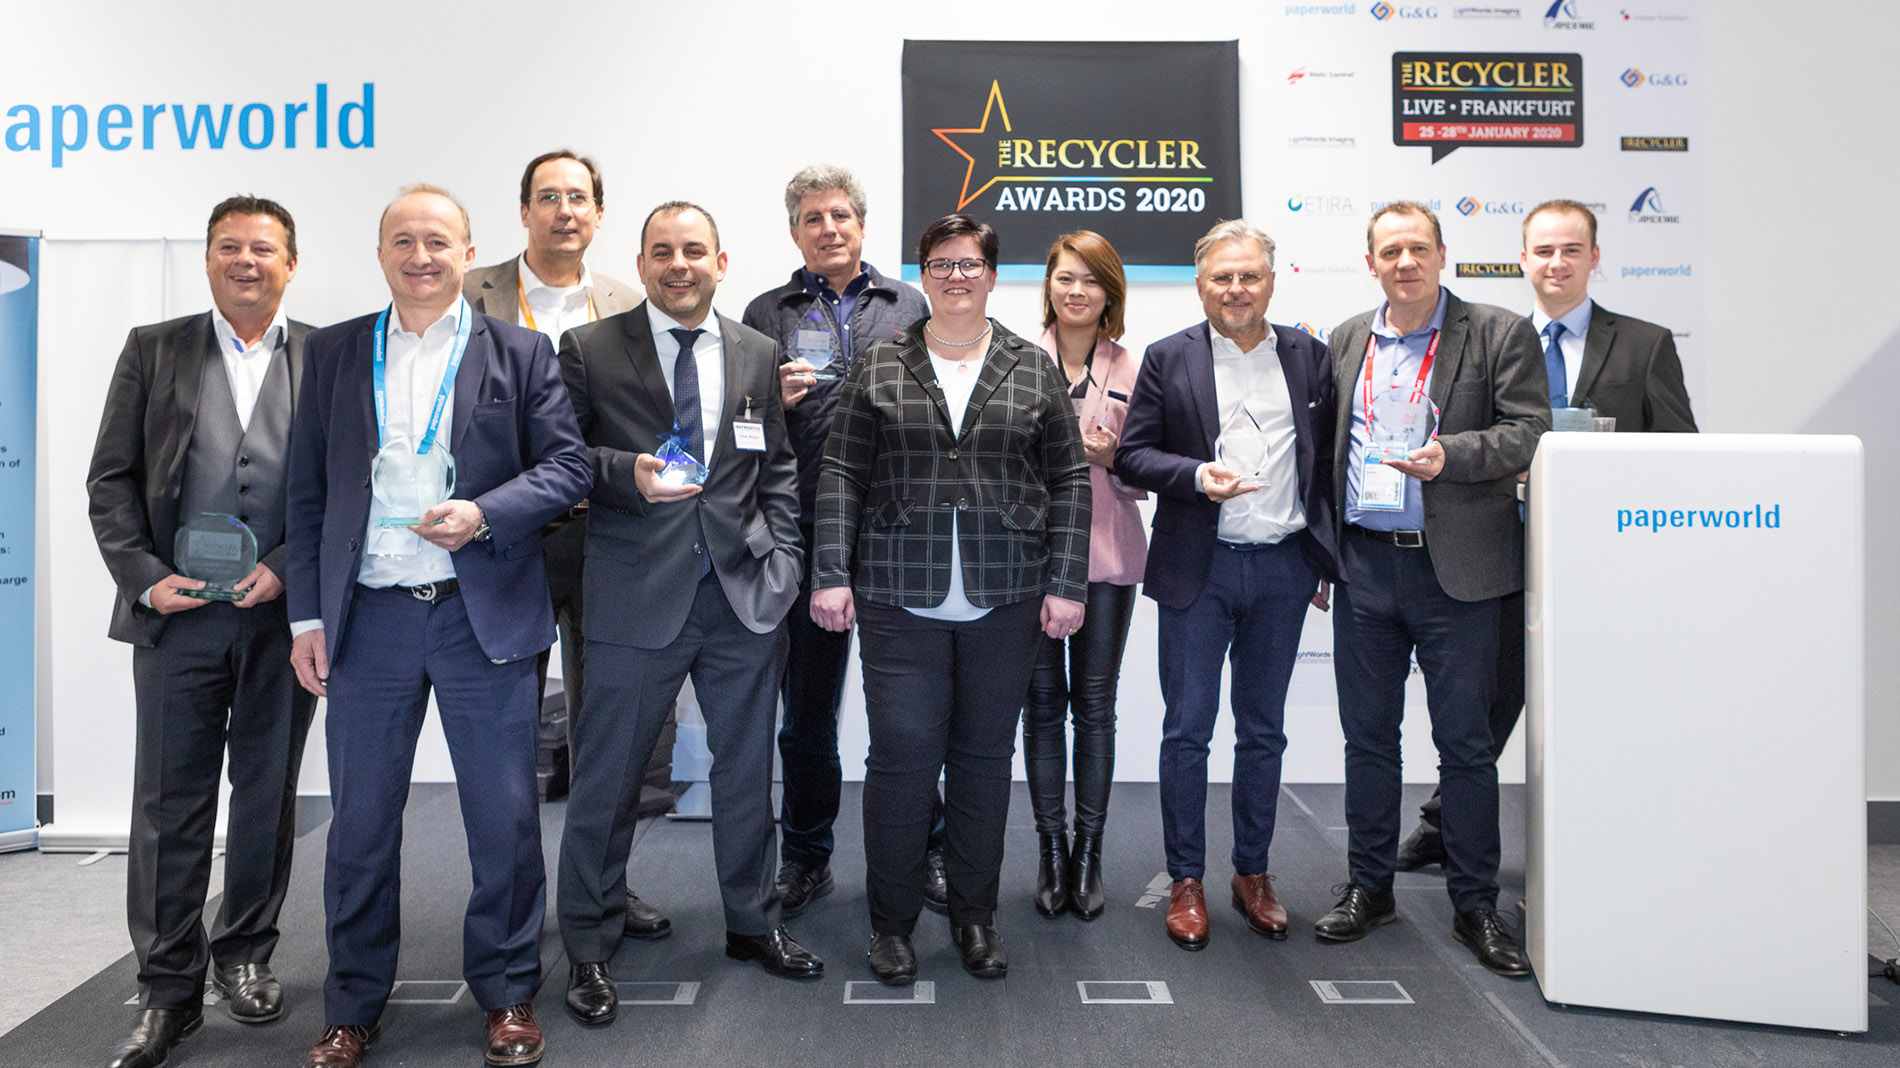 Winners of the Recycler Award 2020